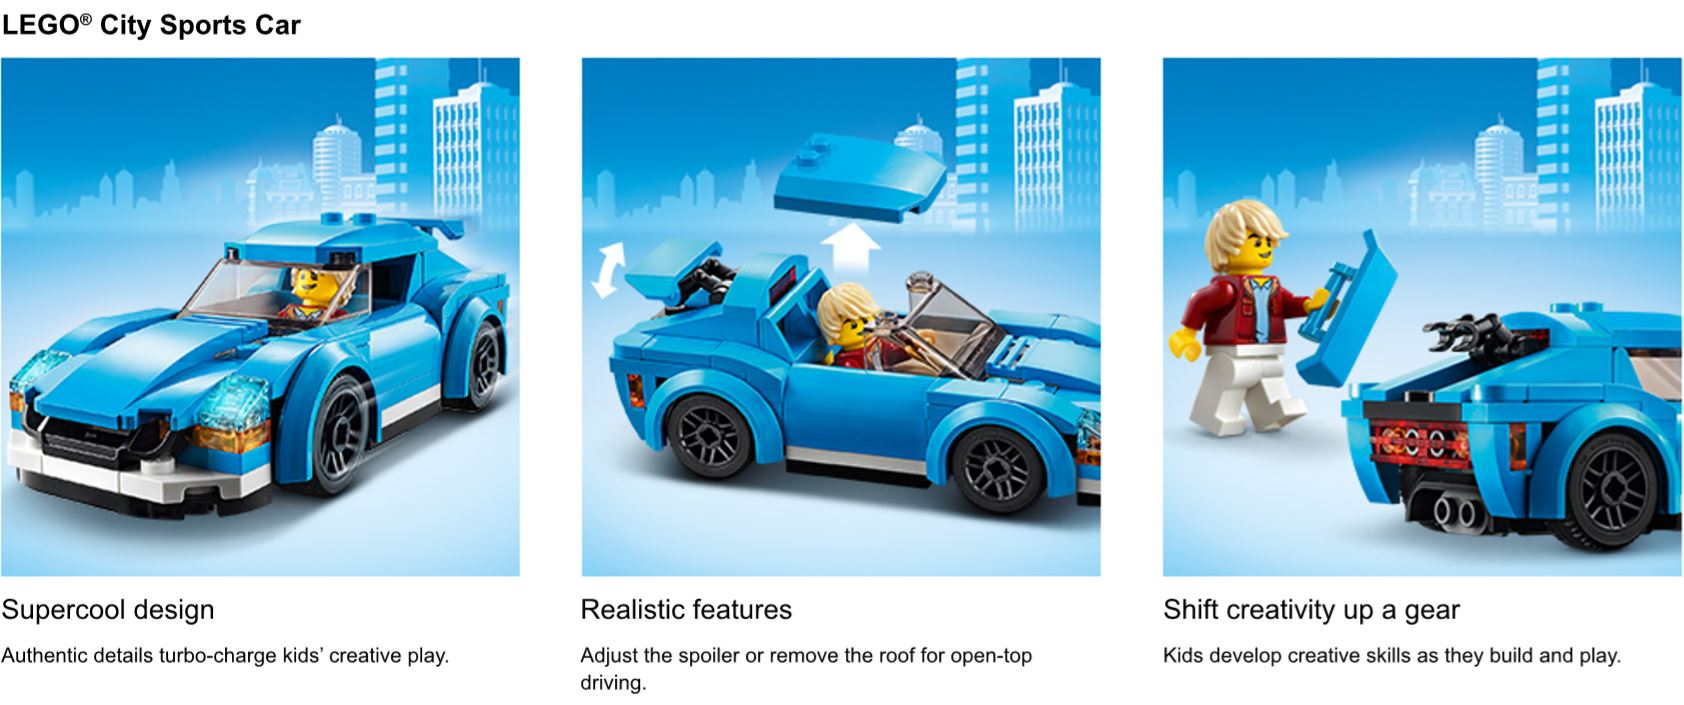 Minifigure with sports car